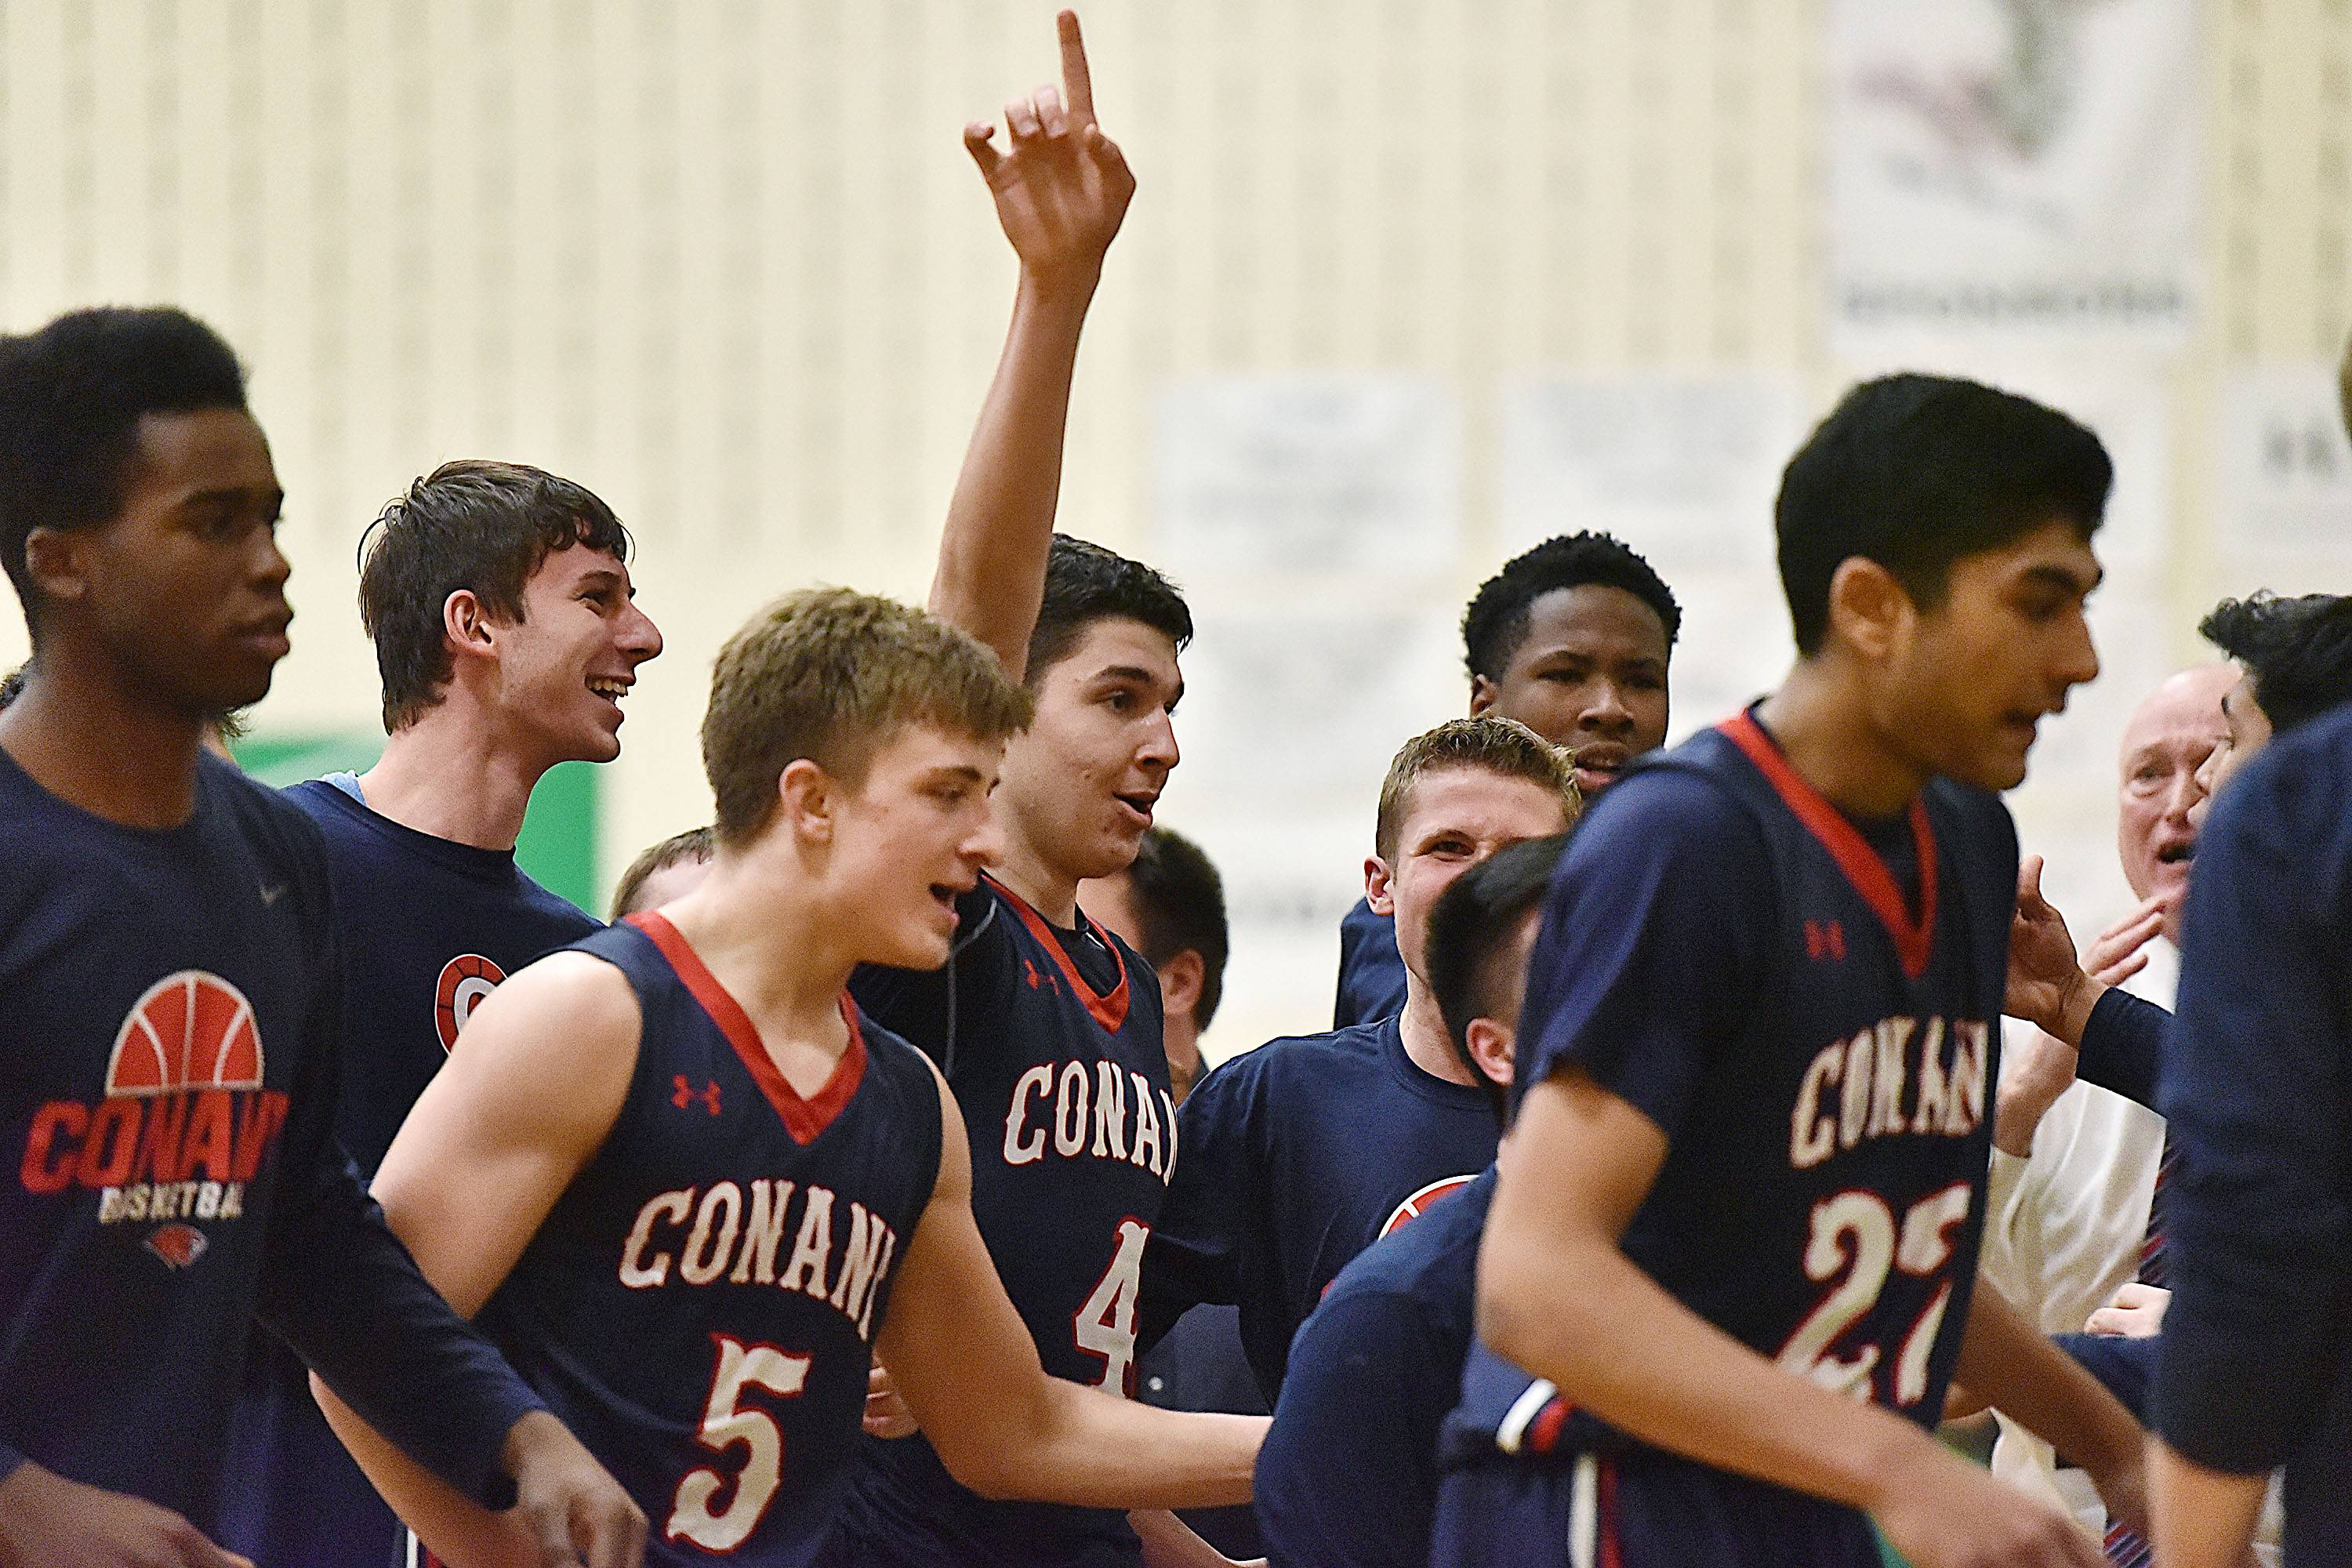 Conant's Jonathan Kolev signals who's No. 1 as he comes to the bench following his game-winning shot in double overtime against Brother Rice on Saturday in the Jack Tosh Holiday Classic championship game at York.